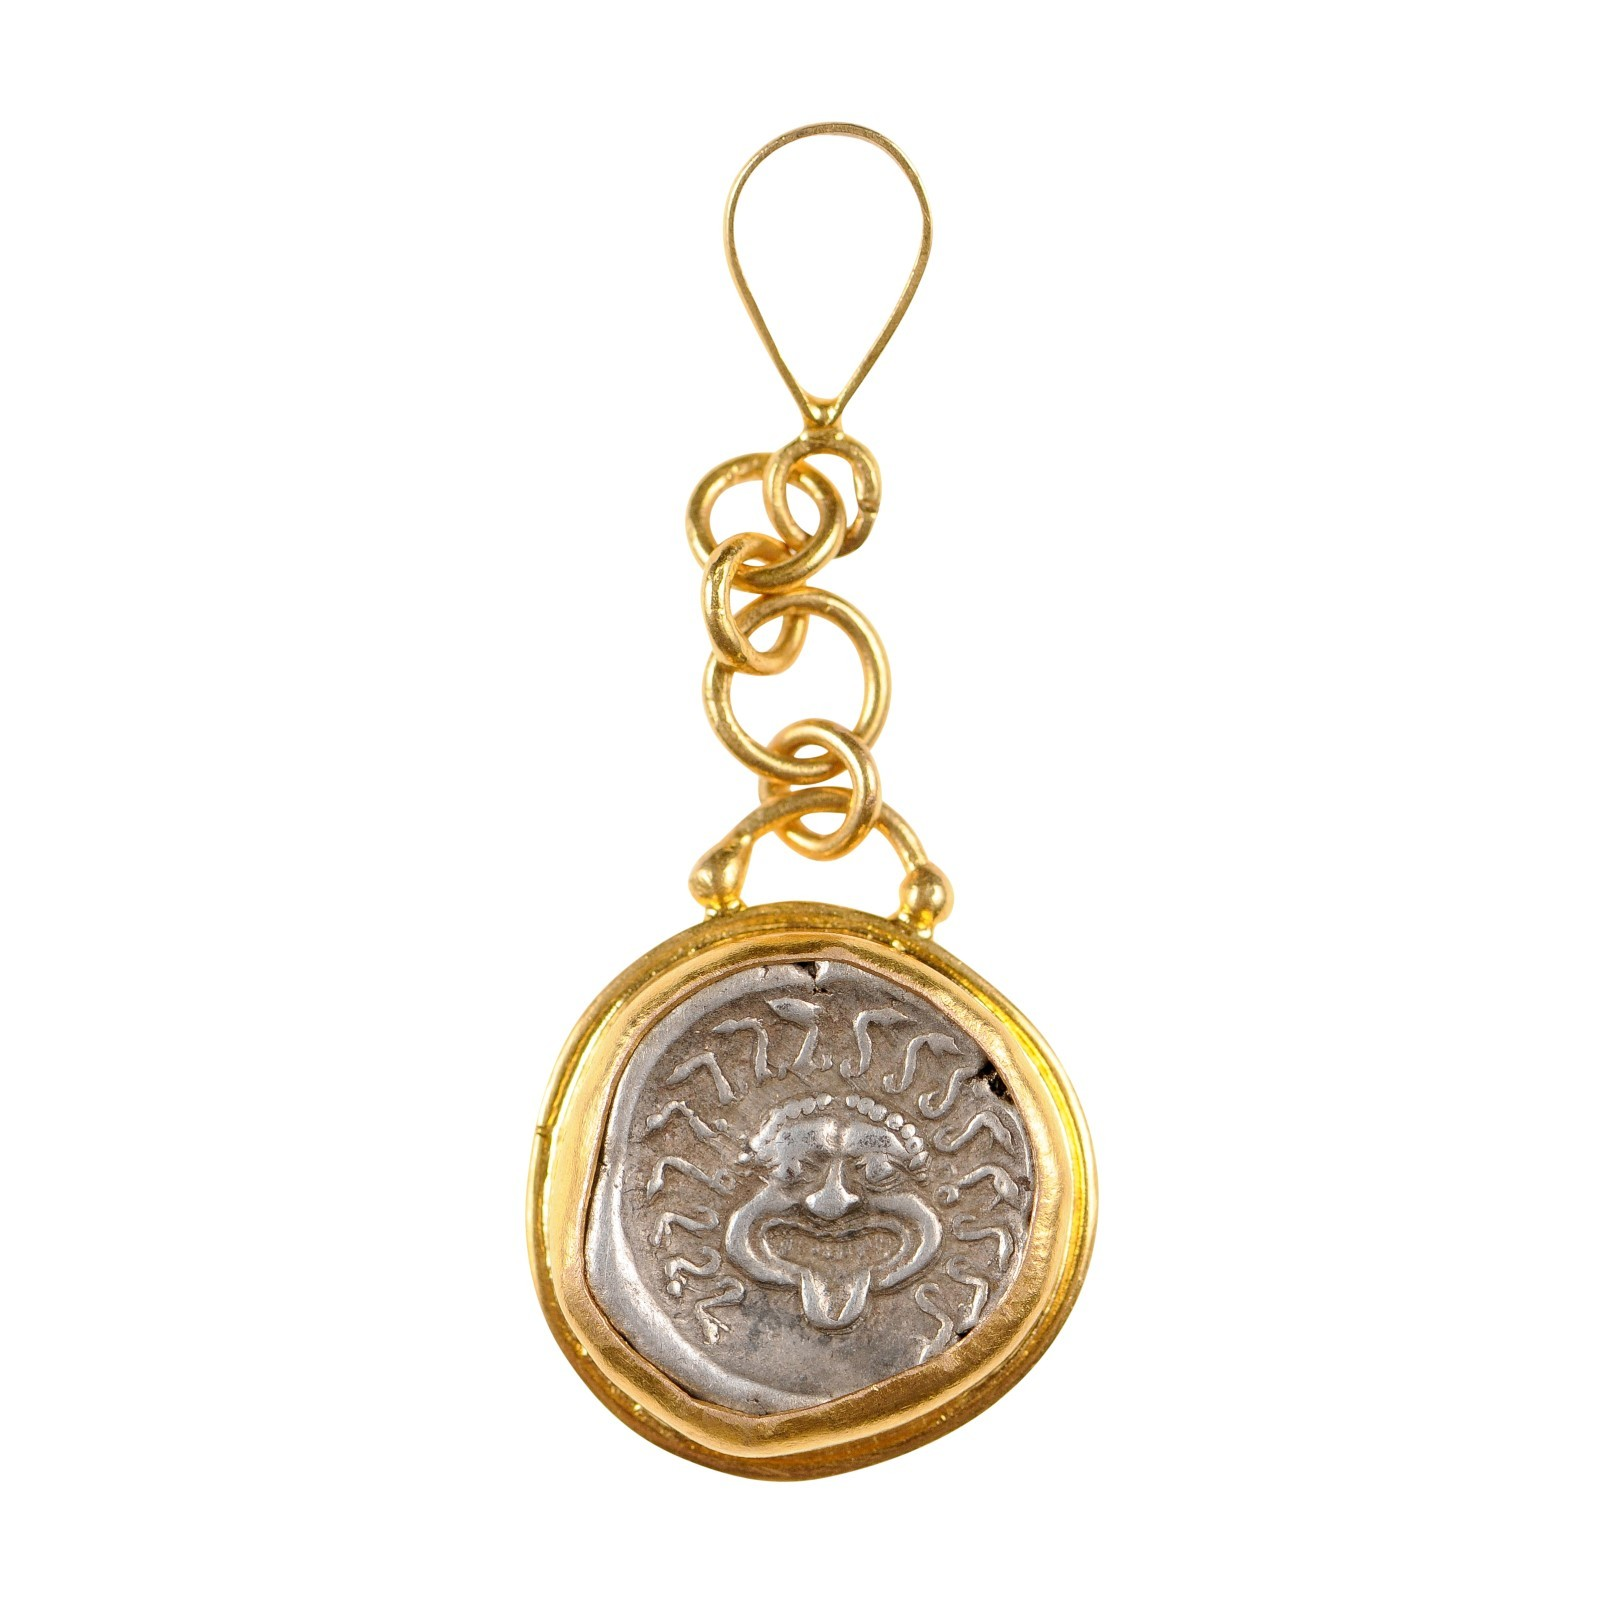 Ancient Greek Coin in 22k Drop Pendant